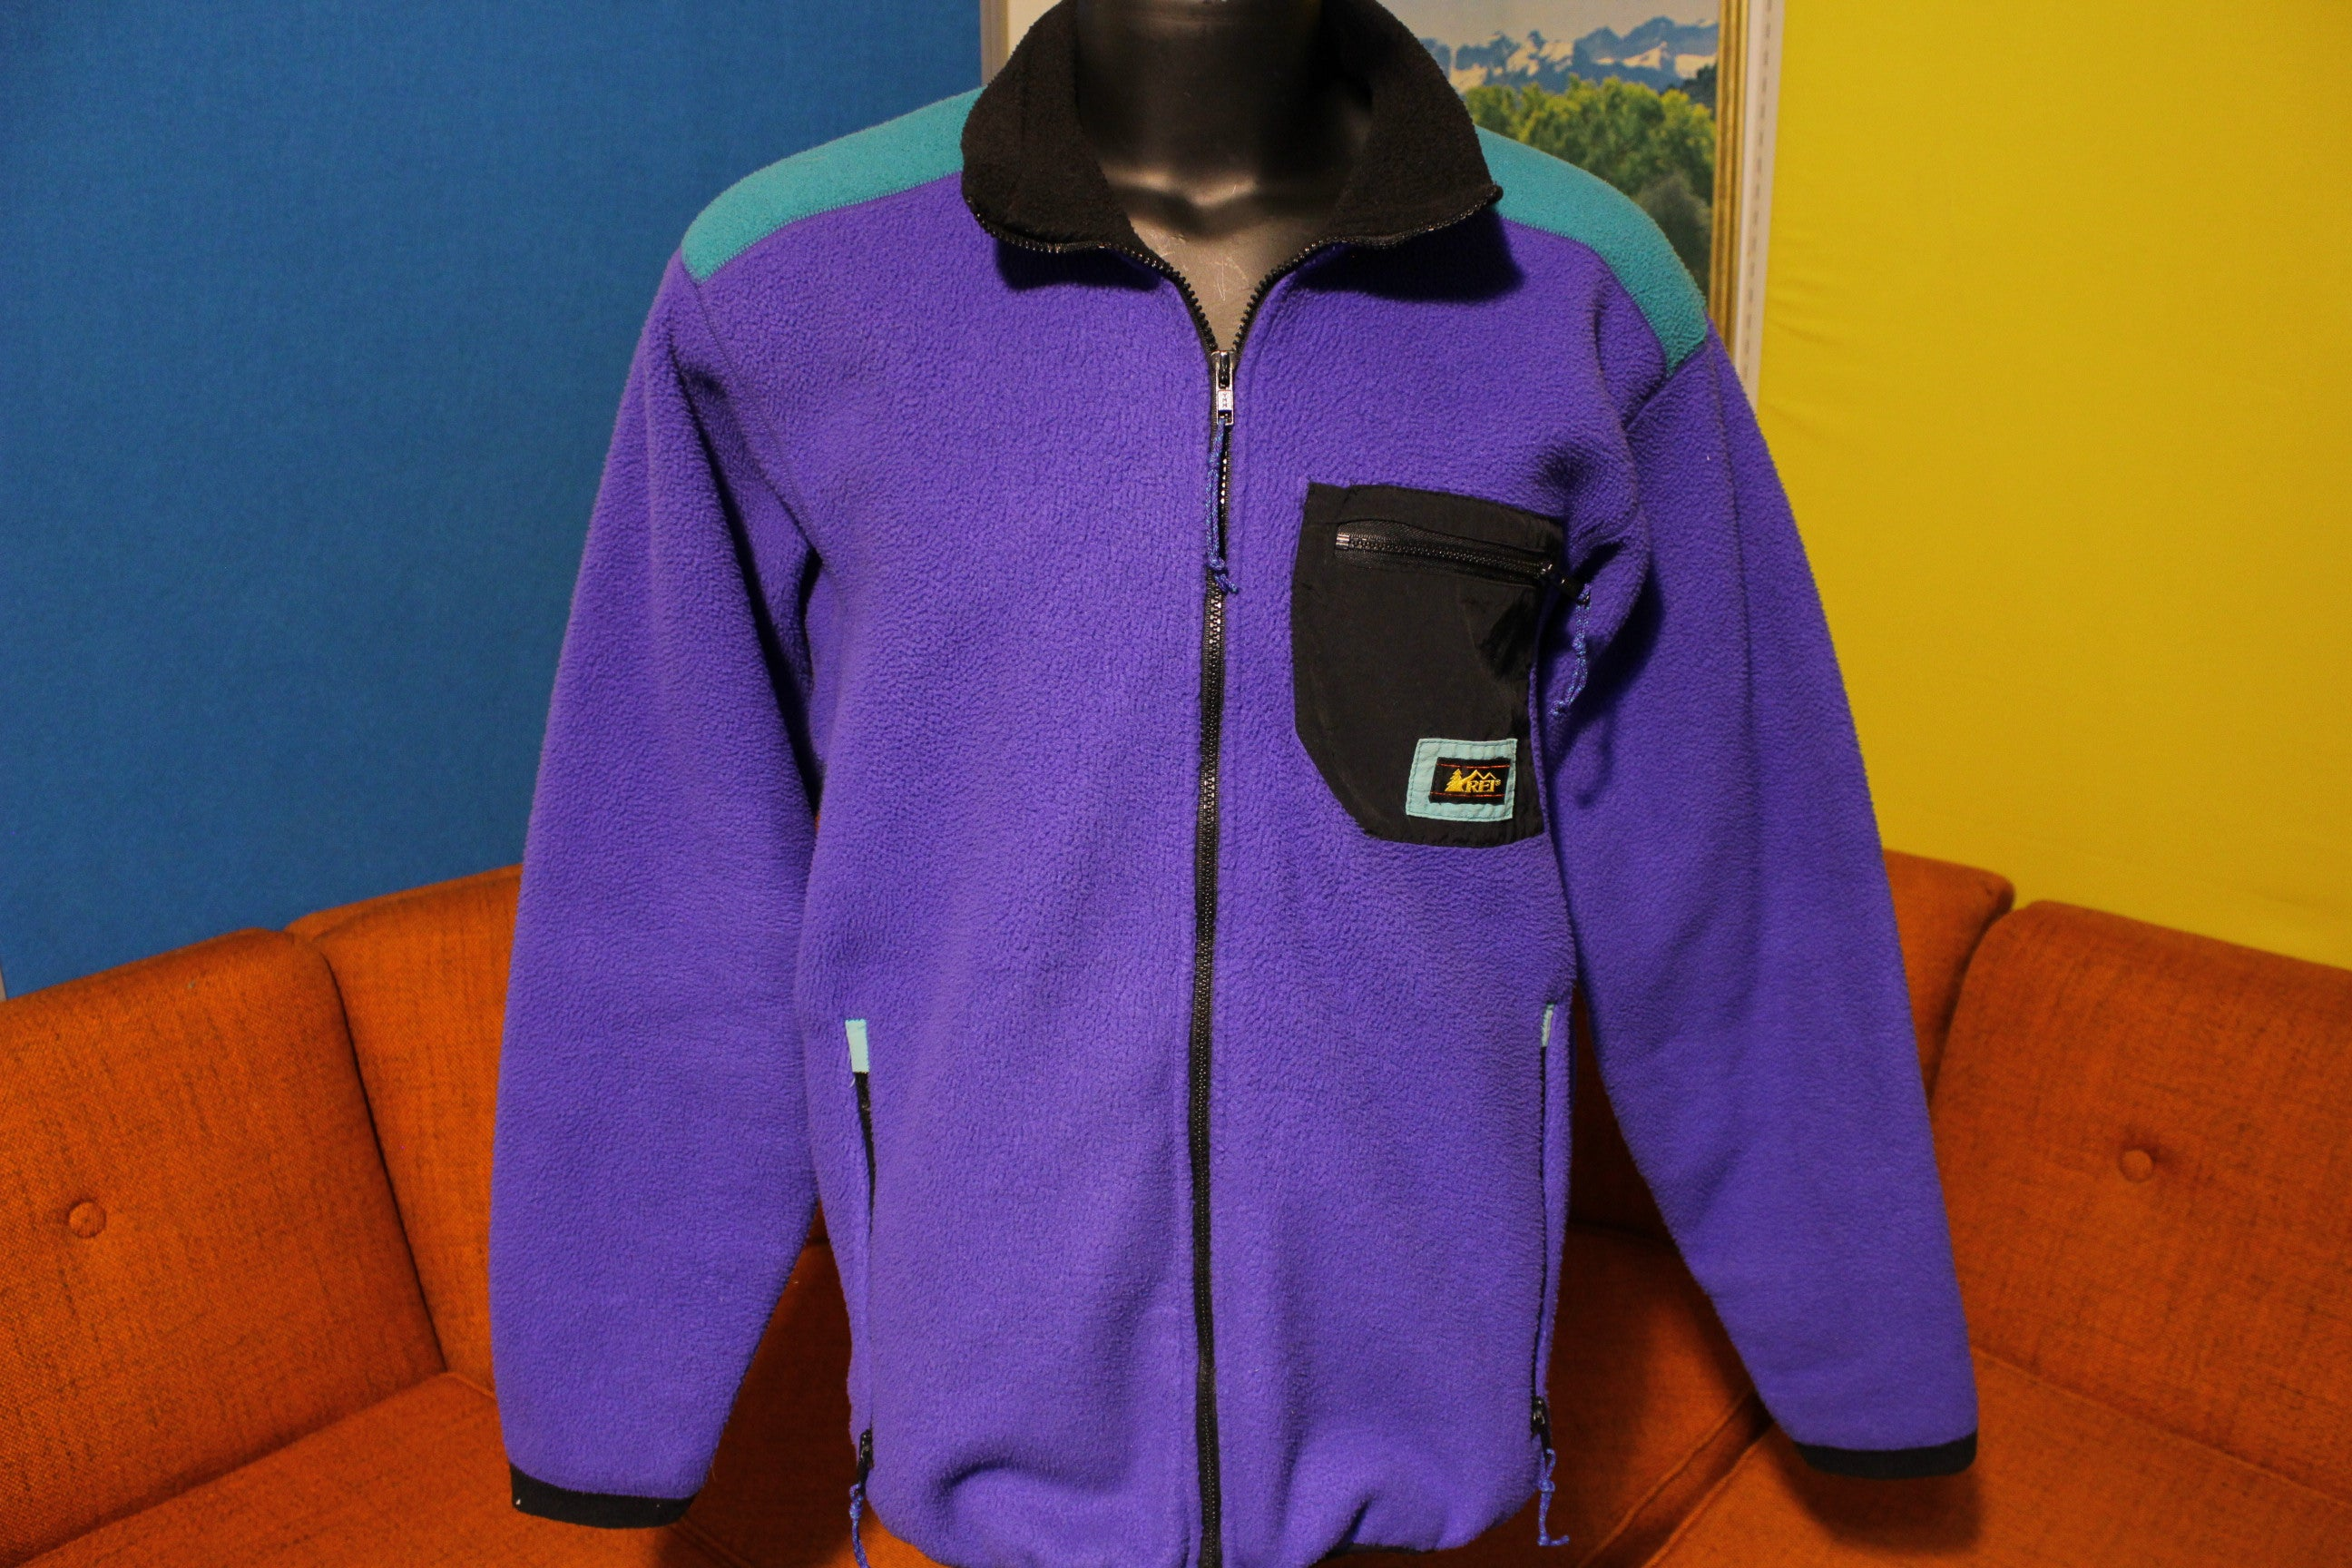 REI Vintage 90's Made In USA Fleece Jacket. Patagonia Style Patch Pocket Coat.